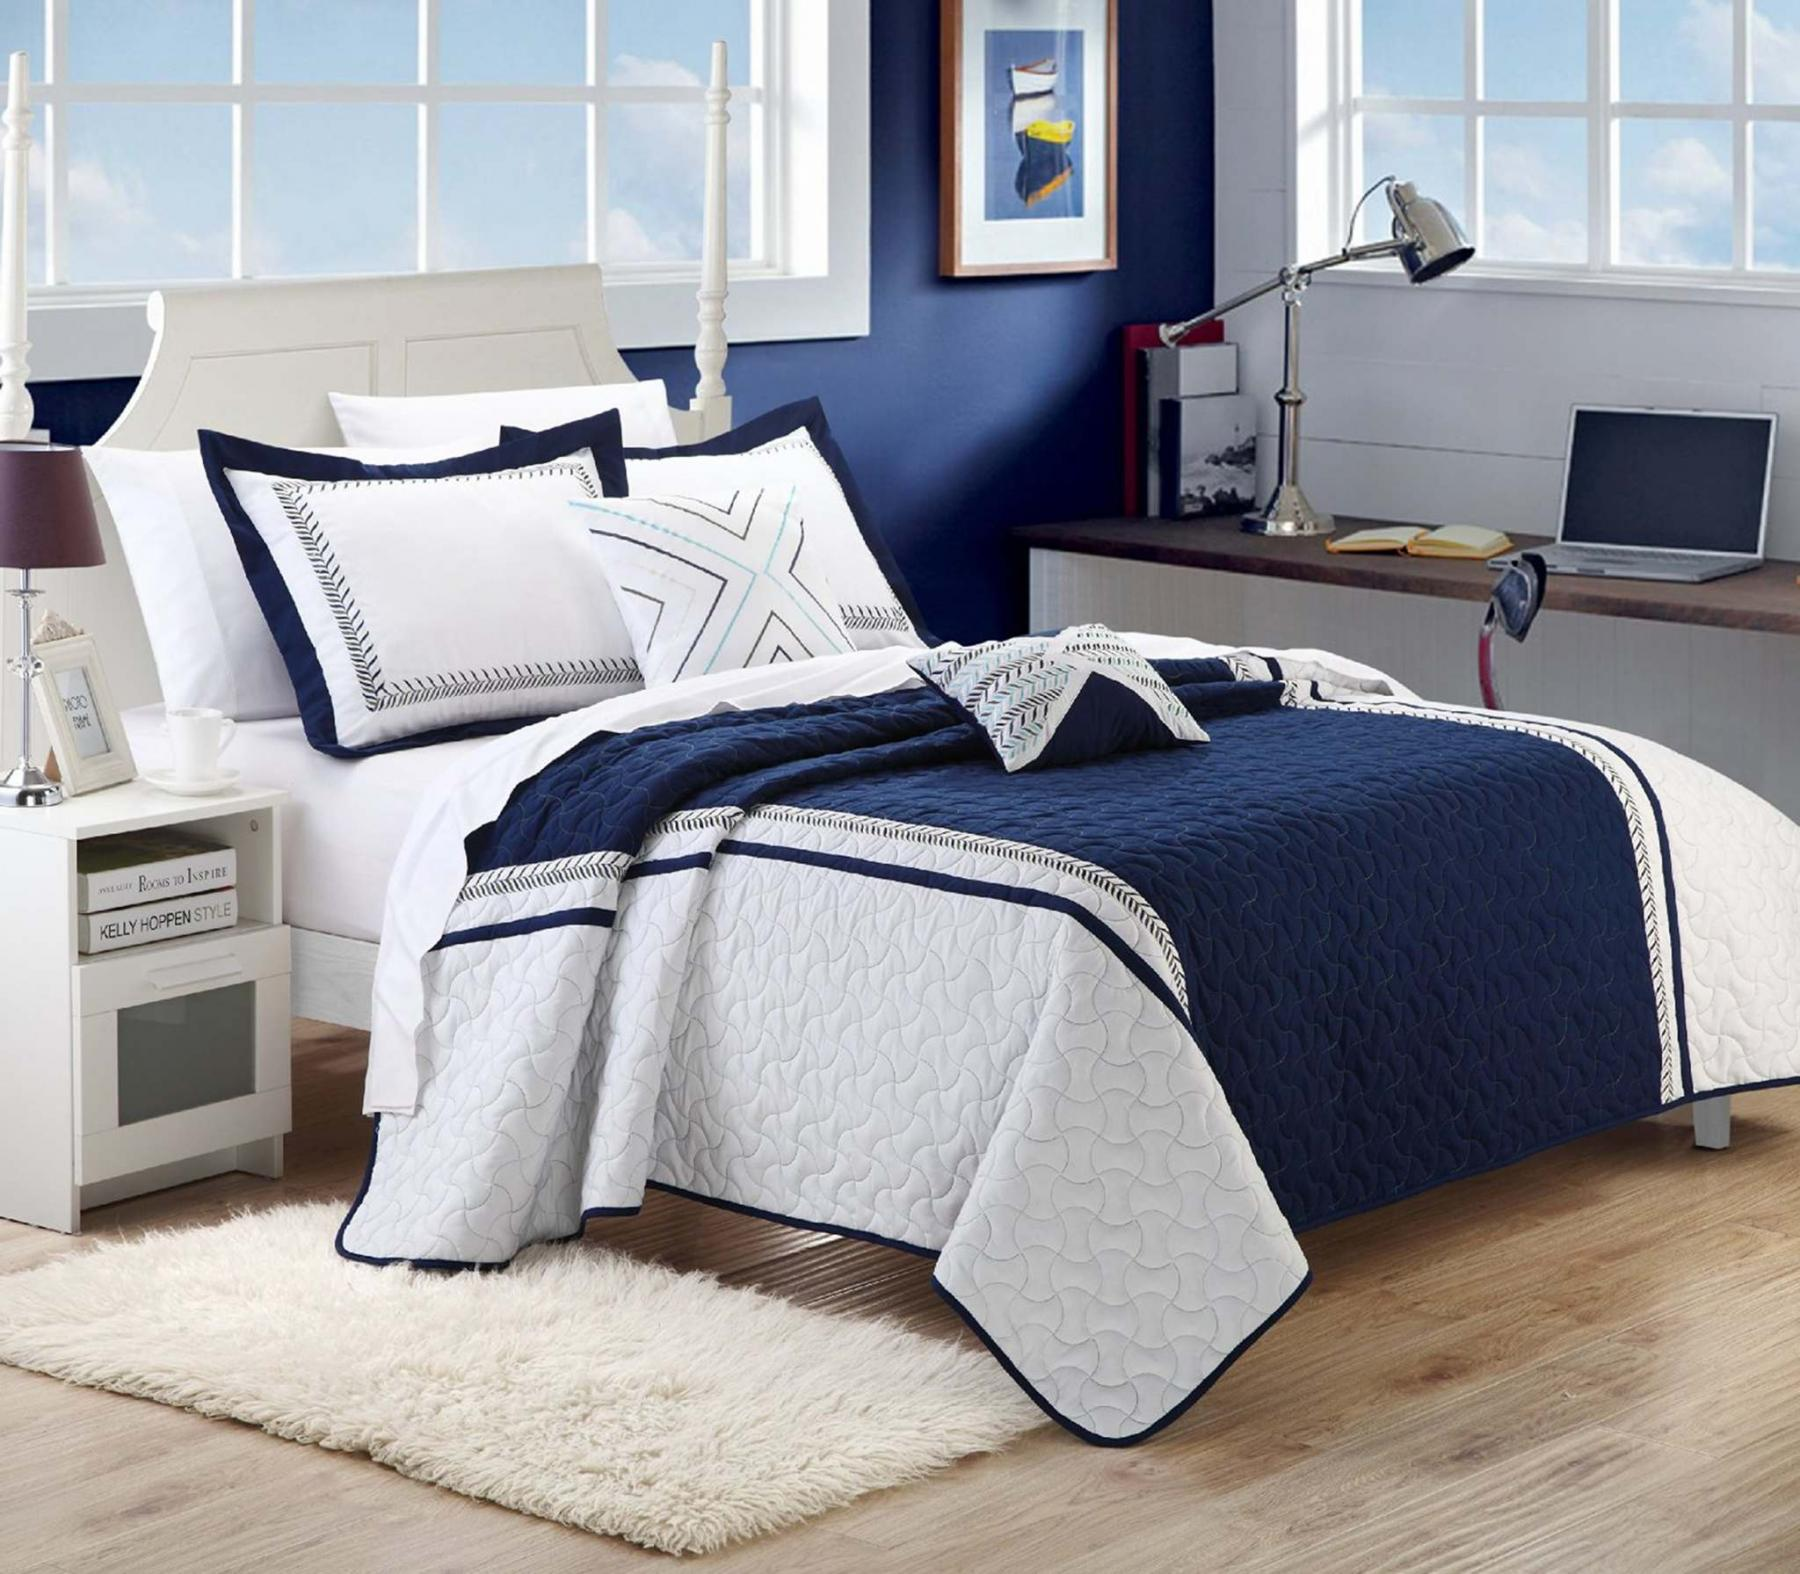 <p>Wayfair</p><p>Blue and white is a traditional mix that looks fantastic in any season or room.</p>